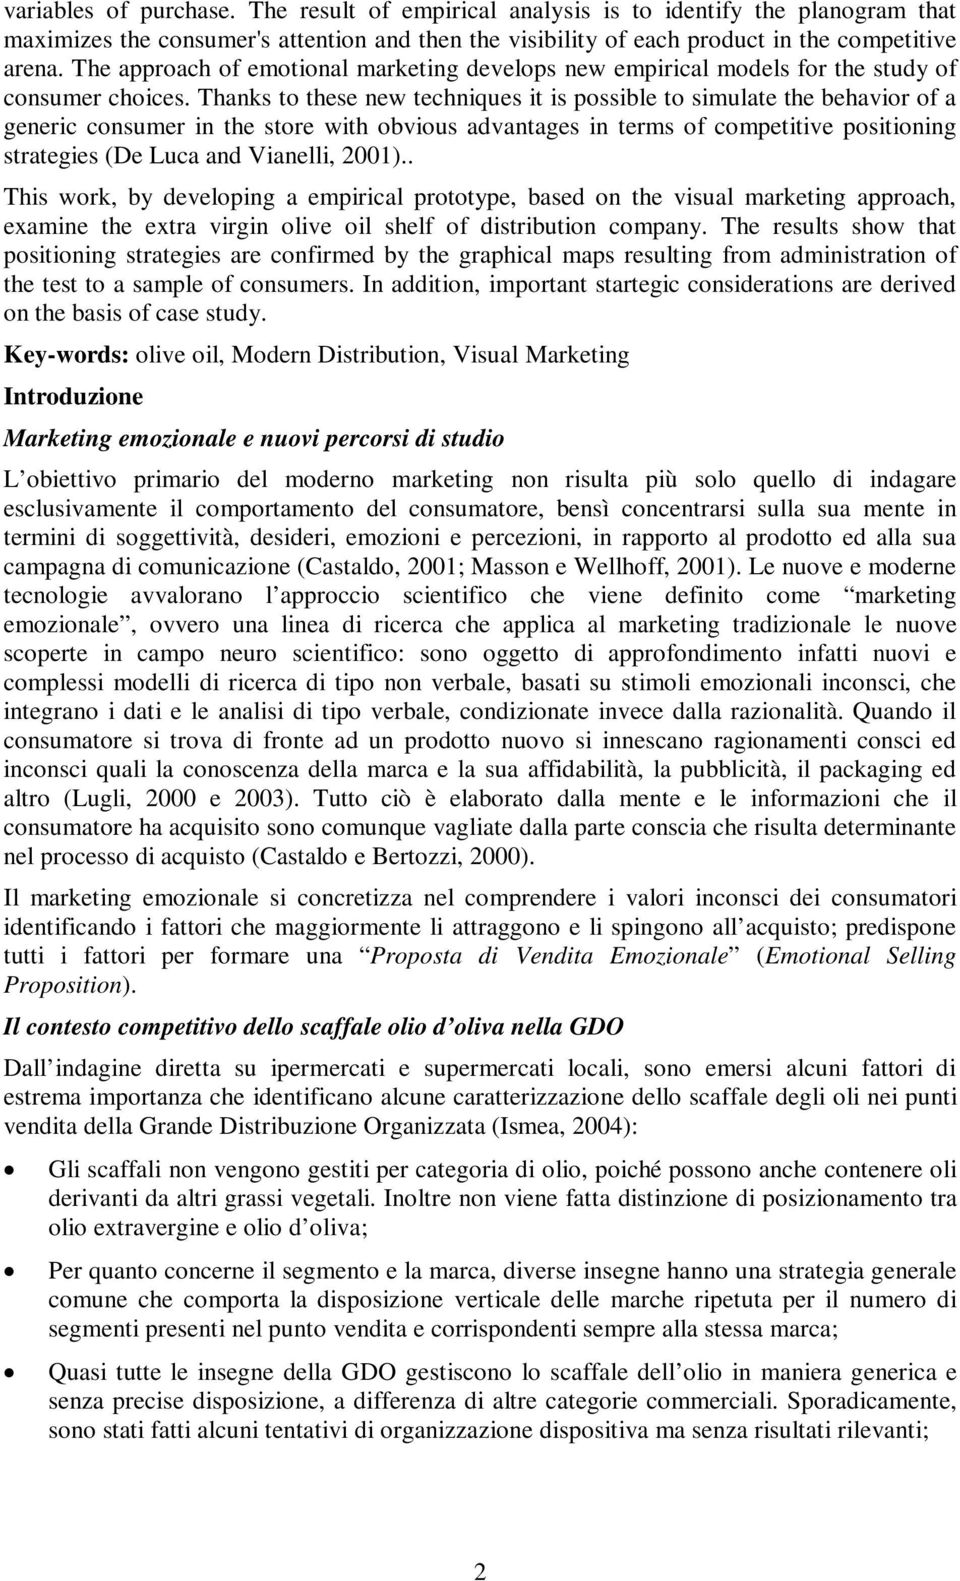 Thanks to these new techniques it is possible to simulate the behavior of a generic consumer in the store with obvious advantages in terms of competitive positioning strategies (De Luca and Vianelli,